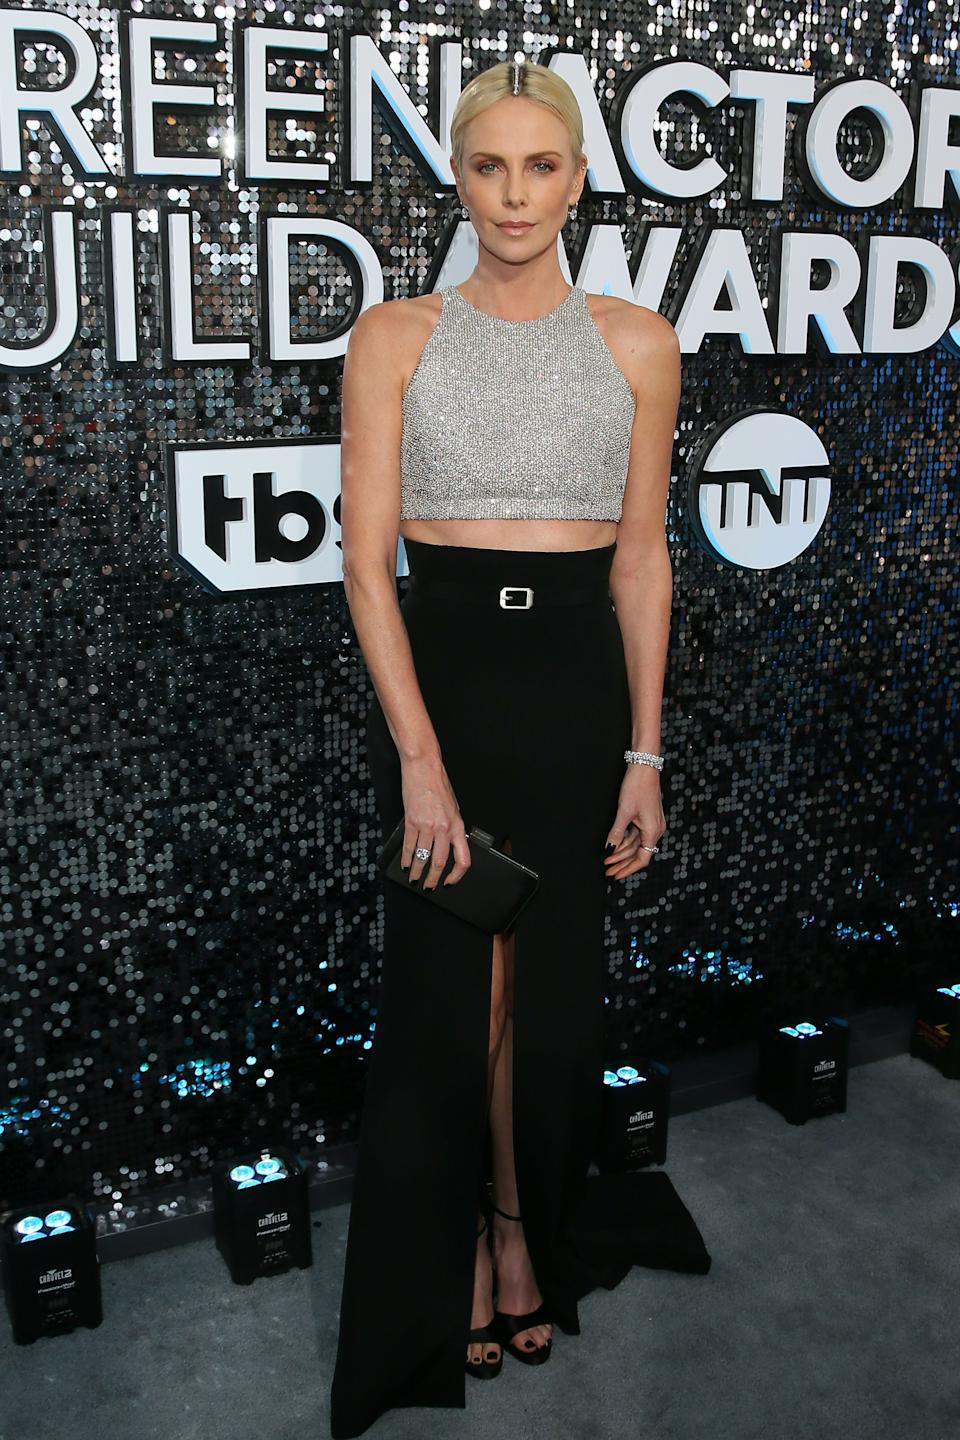 <h2>Charlize Theron in Dior</h2><br>Charlize Theron admitting that she used Tiffany & Co. diamonds to cover up her dark roots has to be the best line of the night. Oh, and her metallic two-piece look is pretty great too.